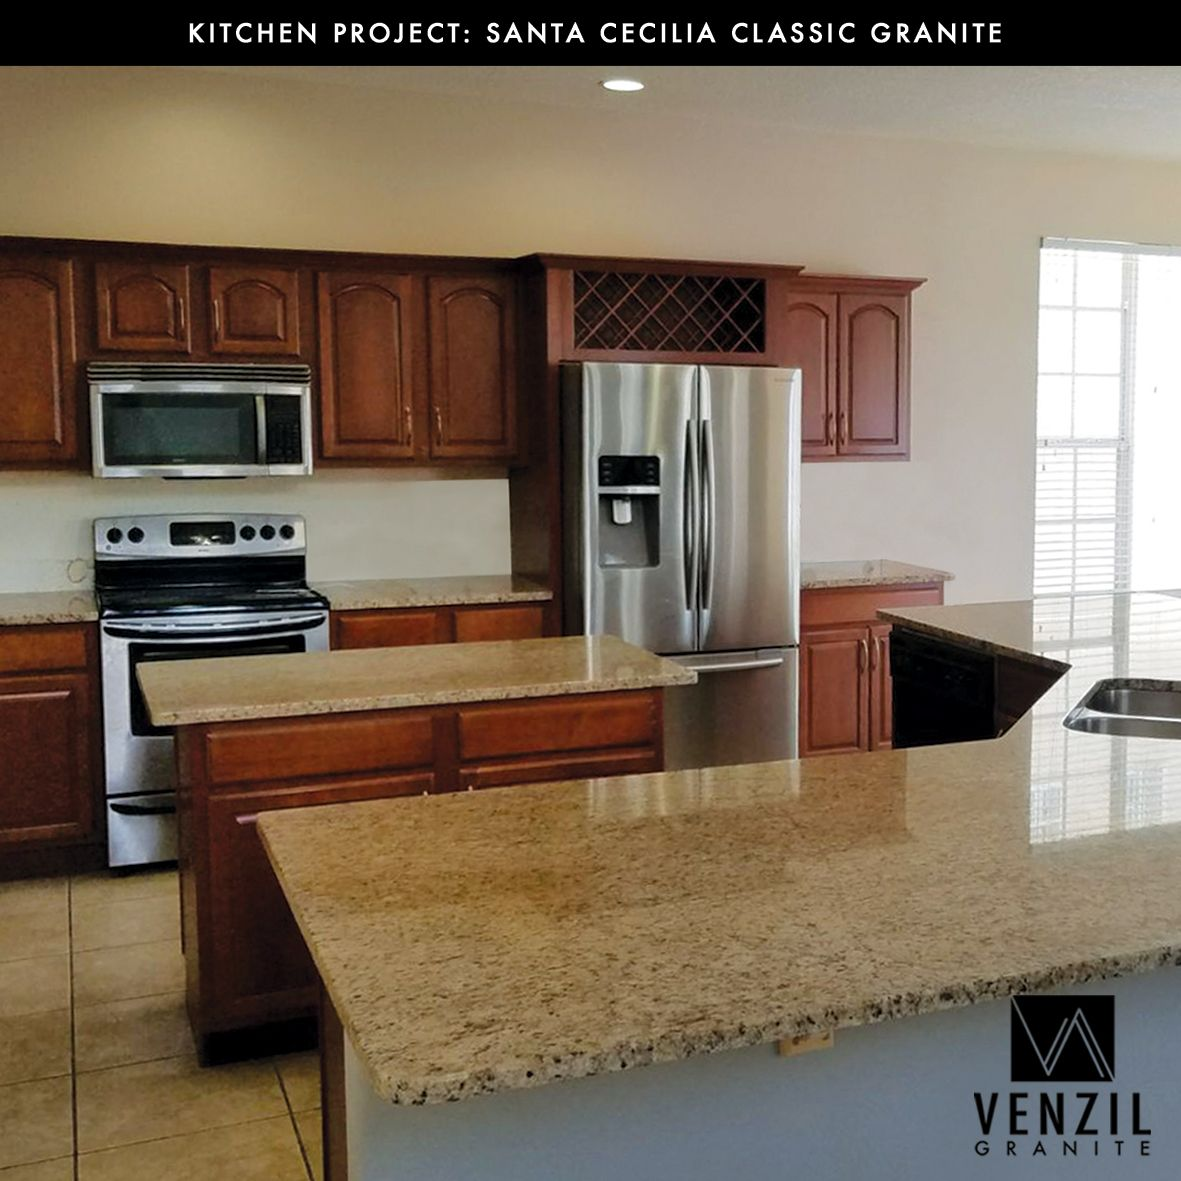 Santa Cecilia Classic Granite Its Elegance And Durability Make It Perfect For Any Home Project Done By Venzil Granite Kitchen Projects Countertops Home Decor